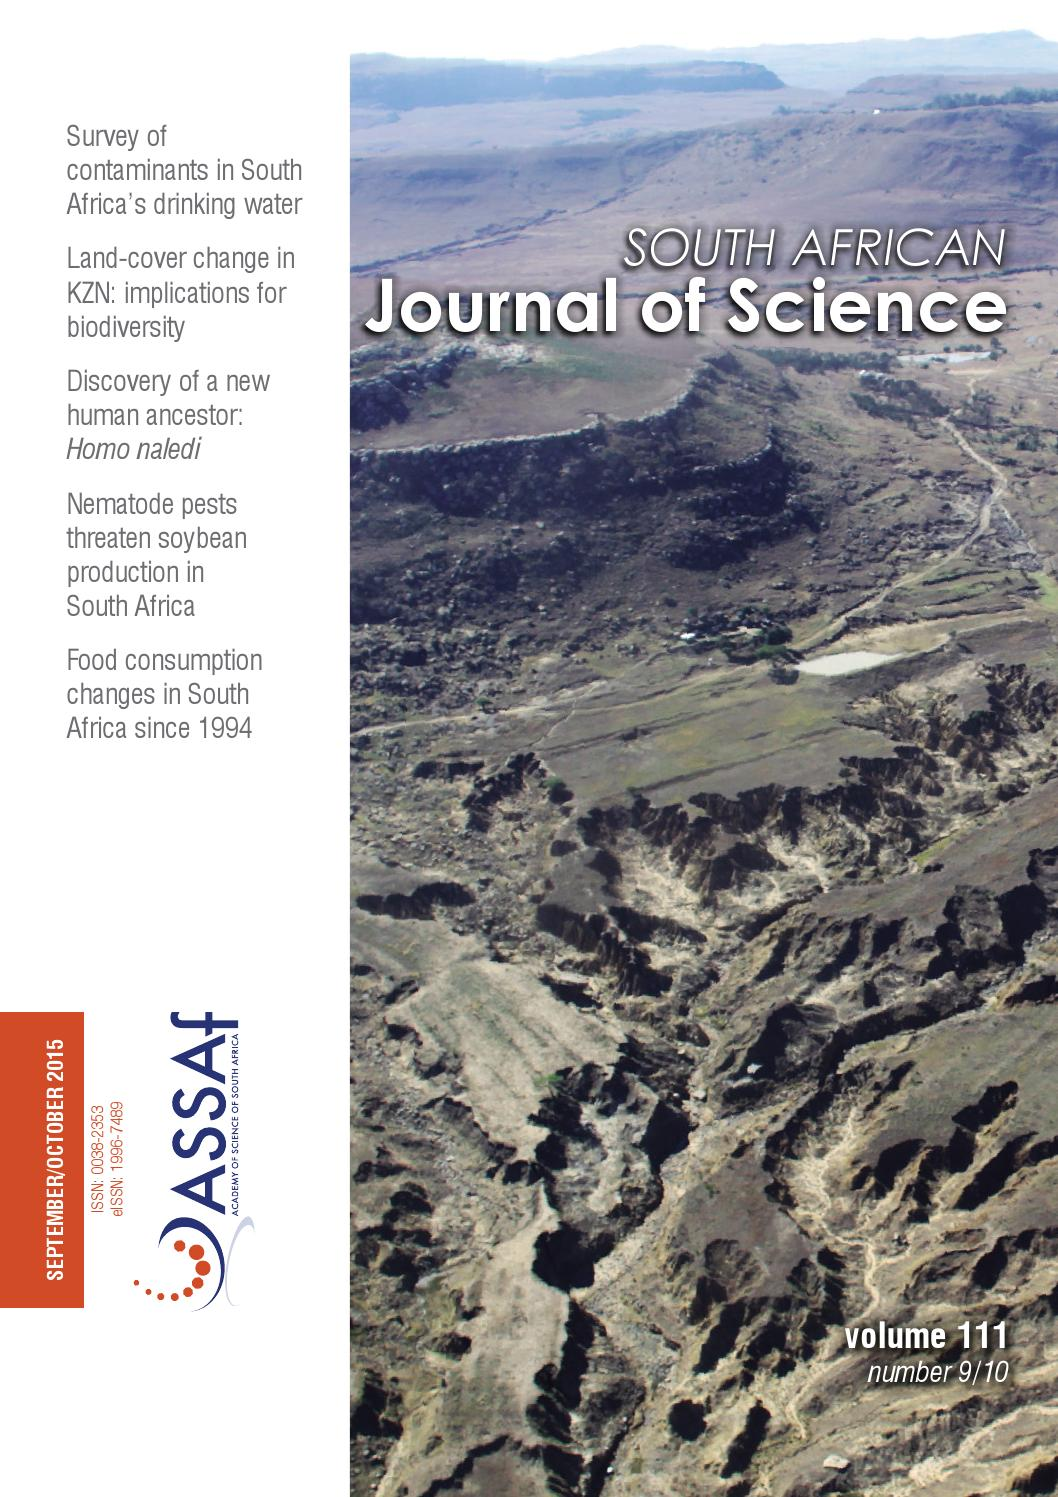 4870e2801cd South African Journal of Science Volume 111 Issue 9/10 by South African  Journal of Science - issuu